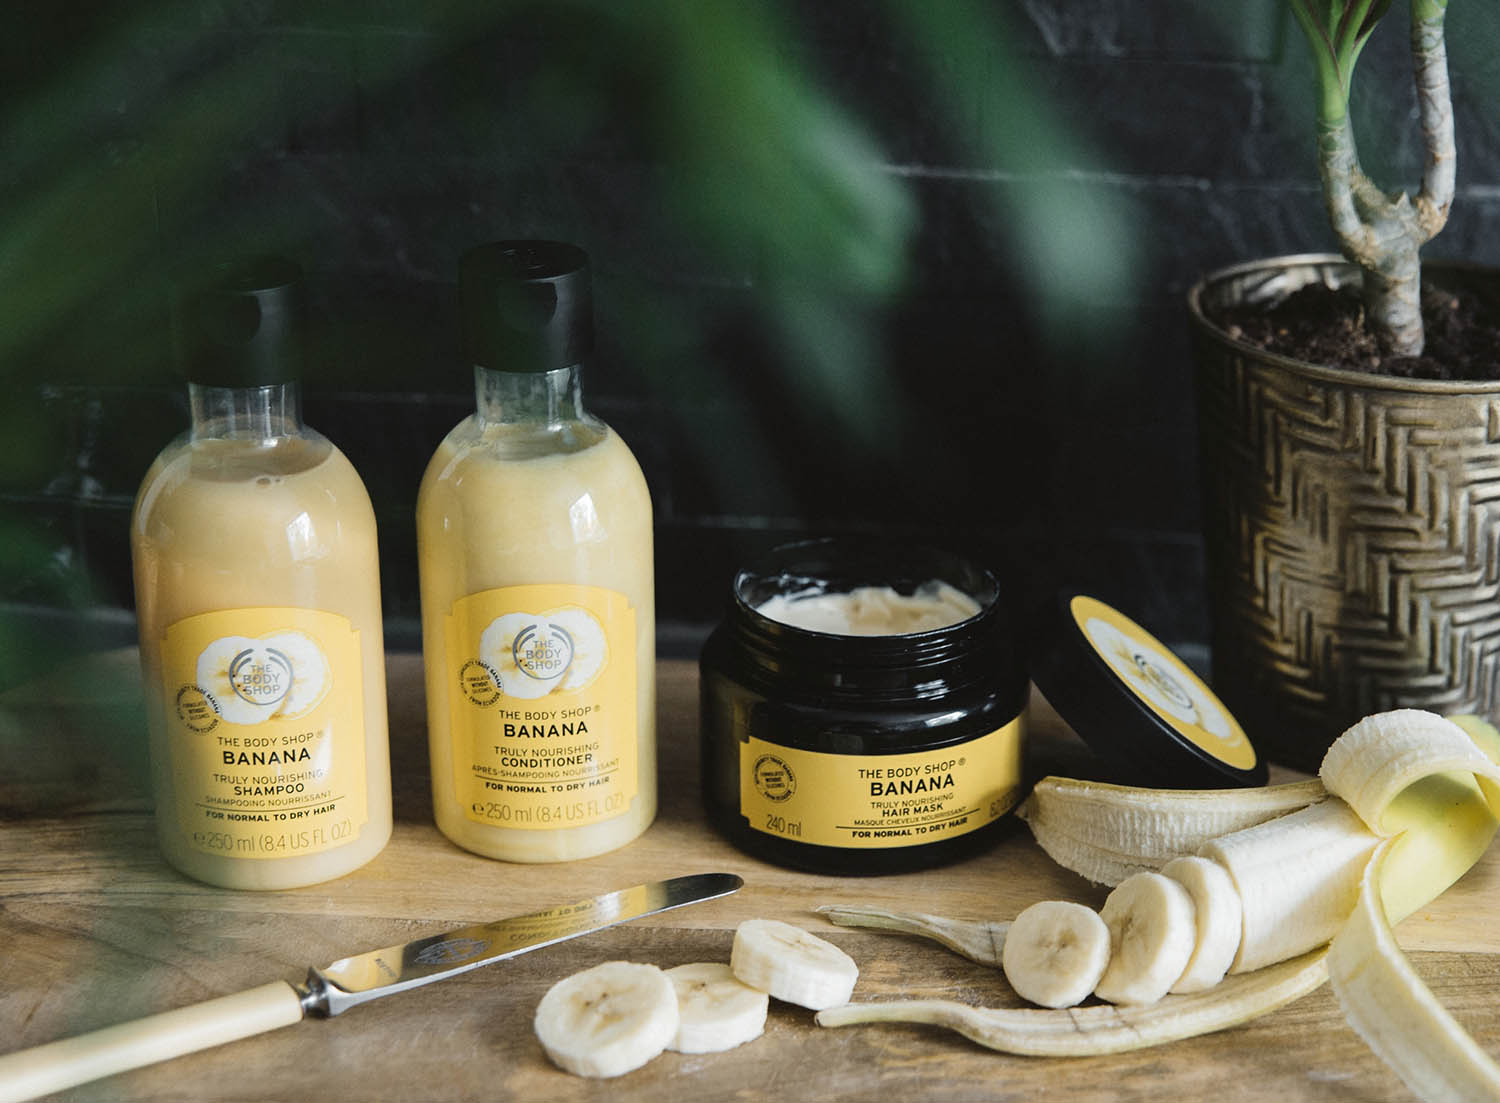 The Body Shop Banana Banana Truly Nourishing Shampoo, Conditioner & Hair Mask